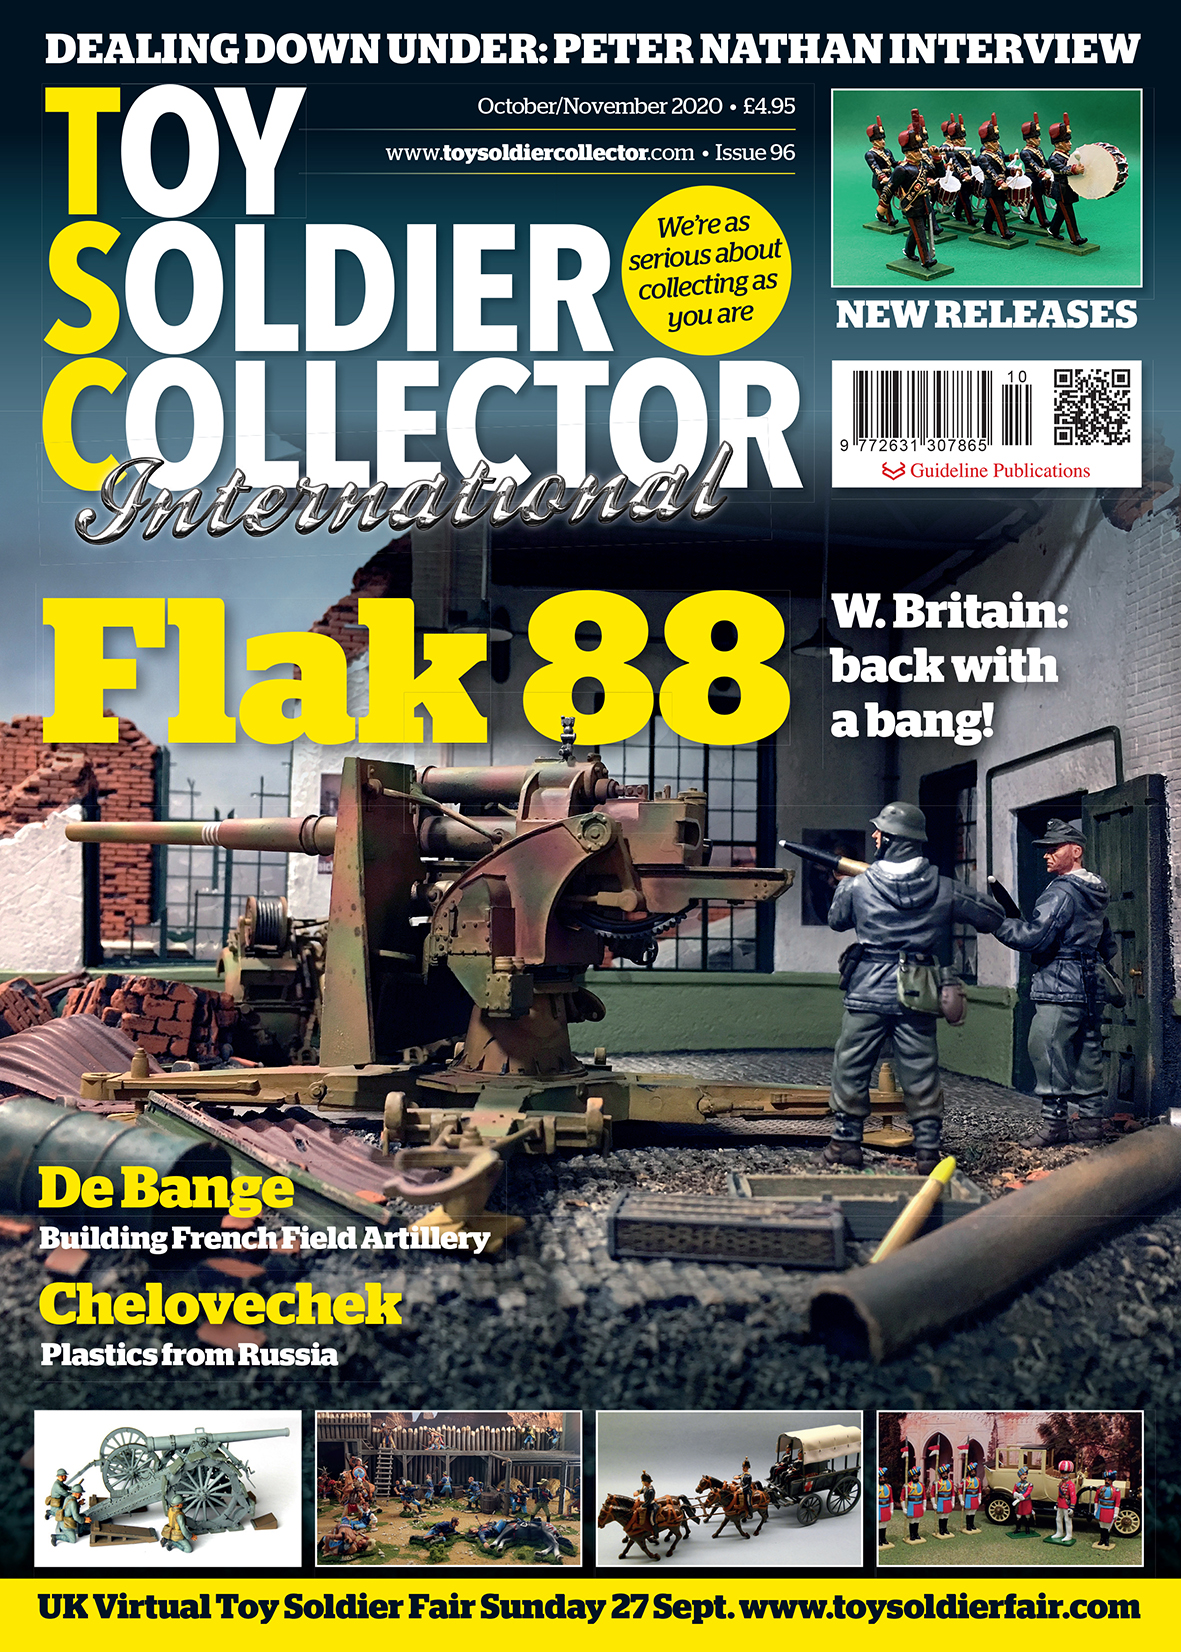 Guideline Publications Toy Soldier Collector #96 Oct/Nov 20 - Issue 96